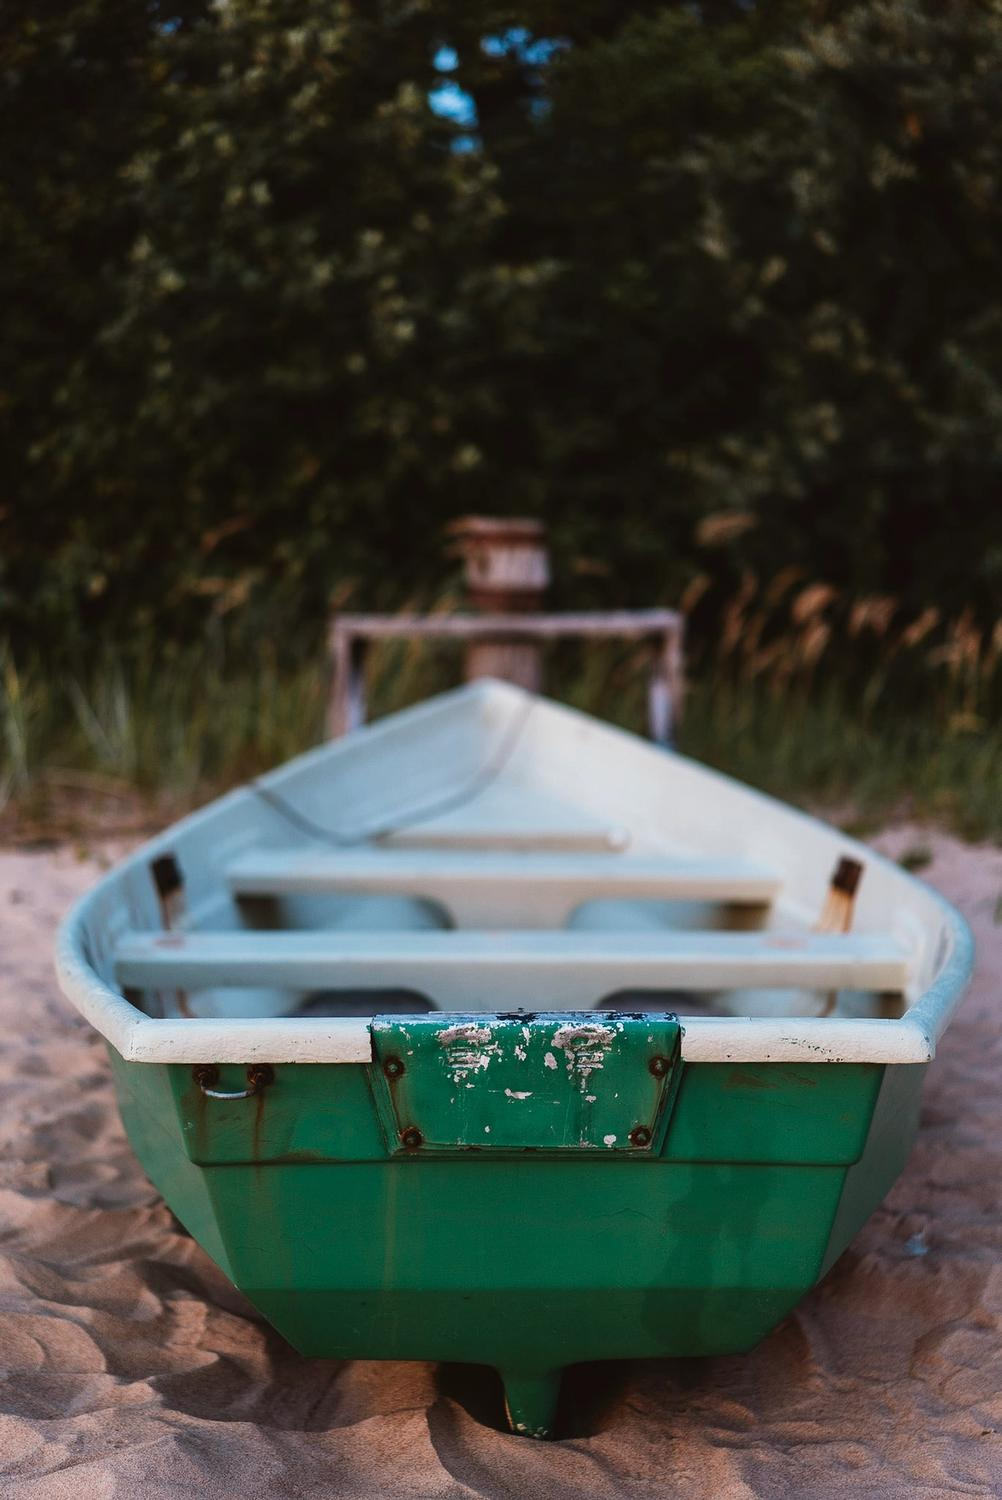 Photo of a boat.